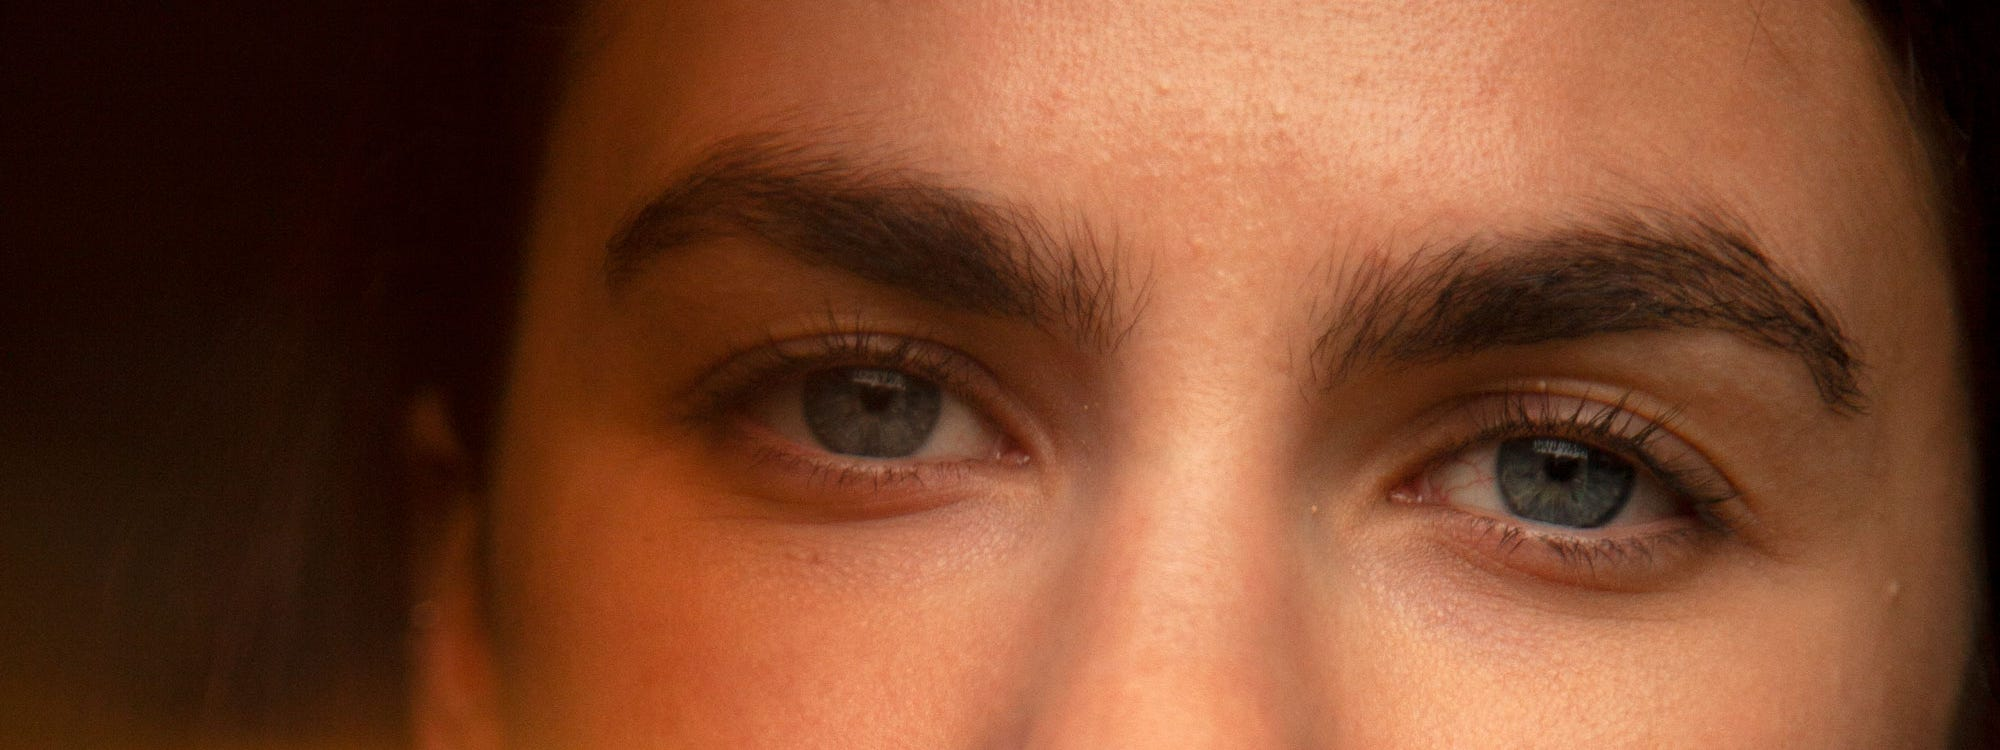 How To Fix A Bad Eyebrow Tint